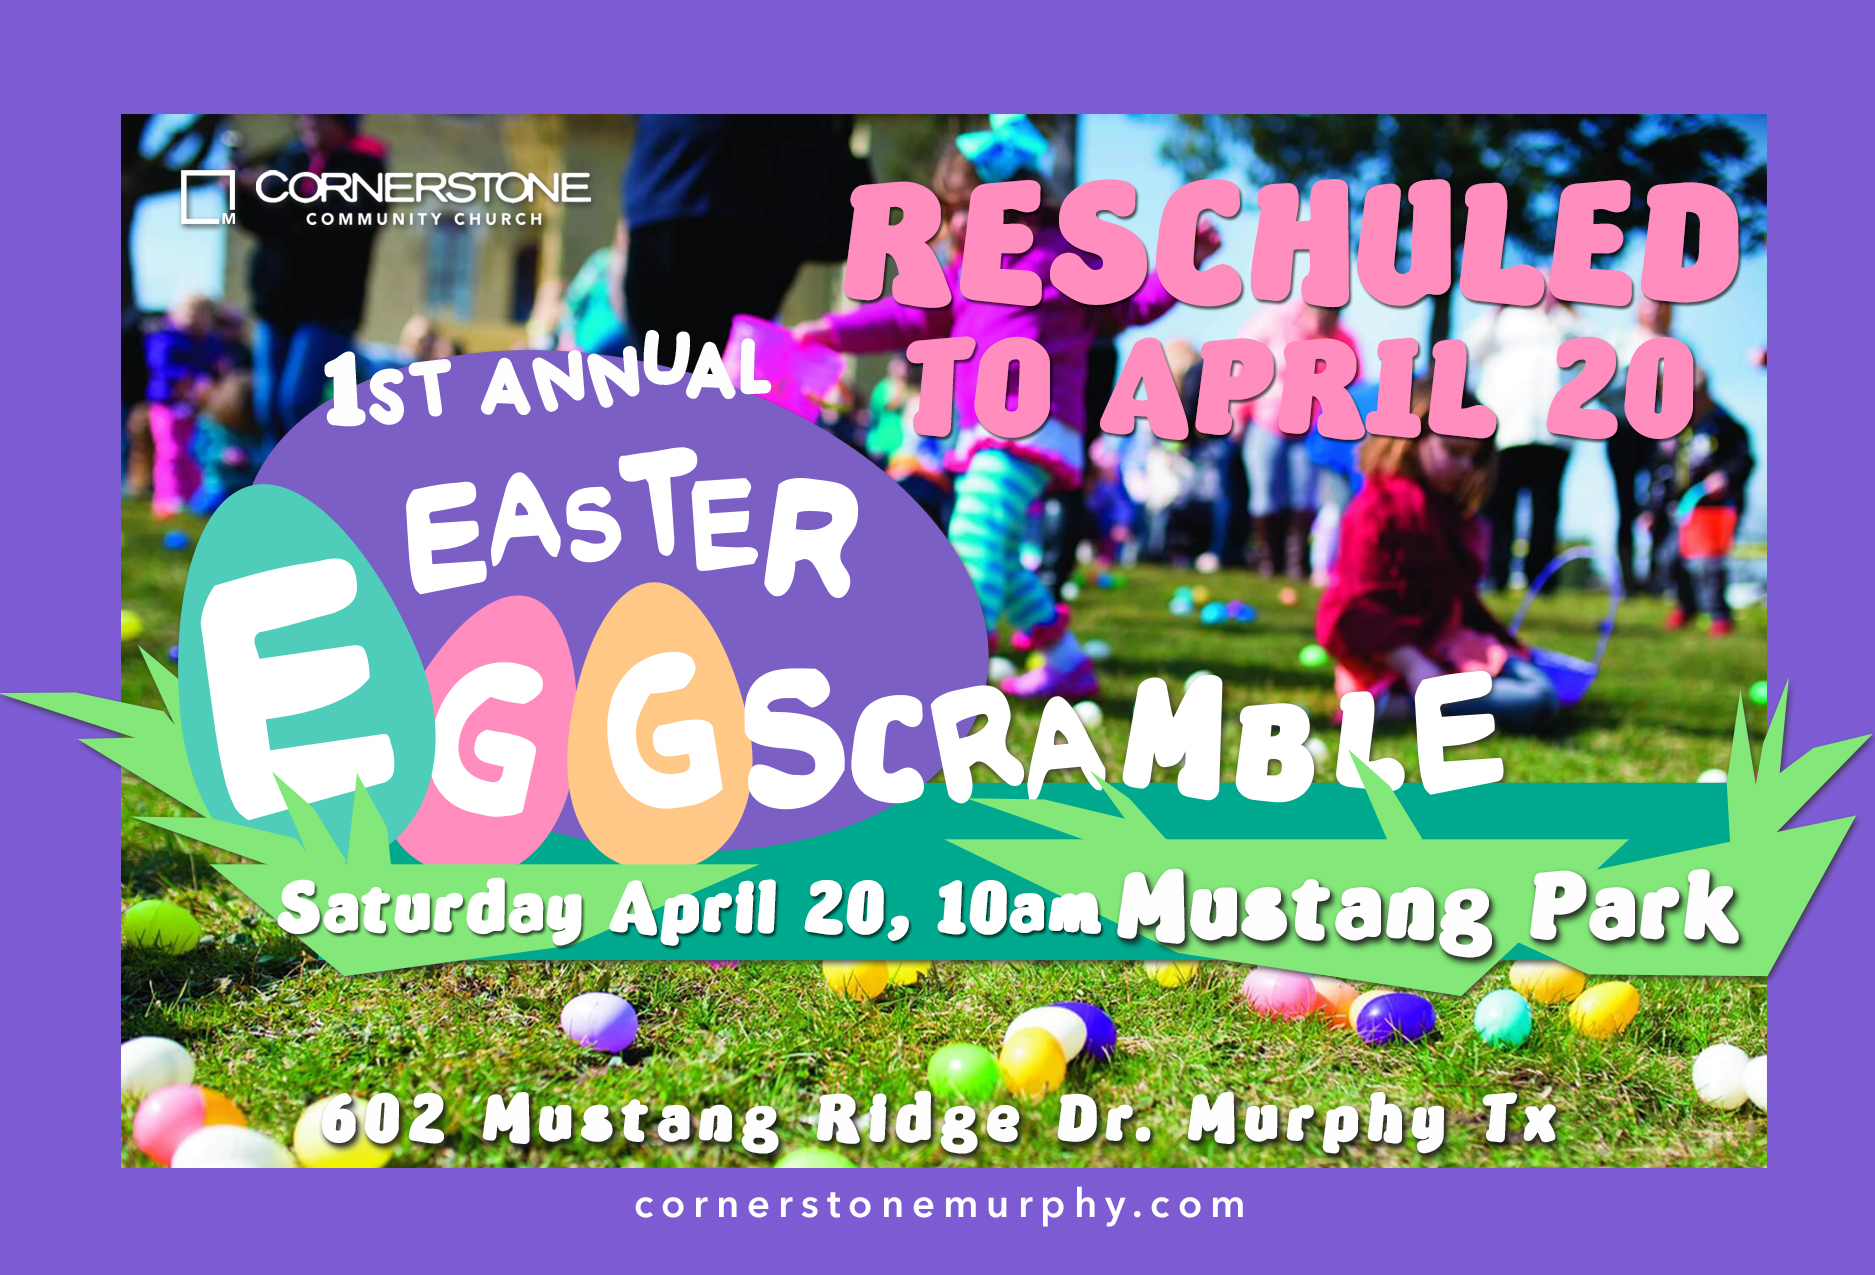 Easter Egg Scramble2.jpg